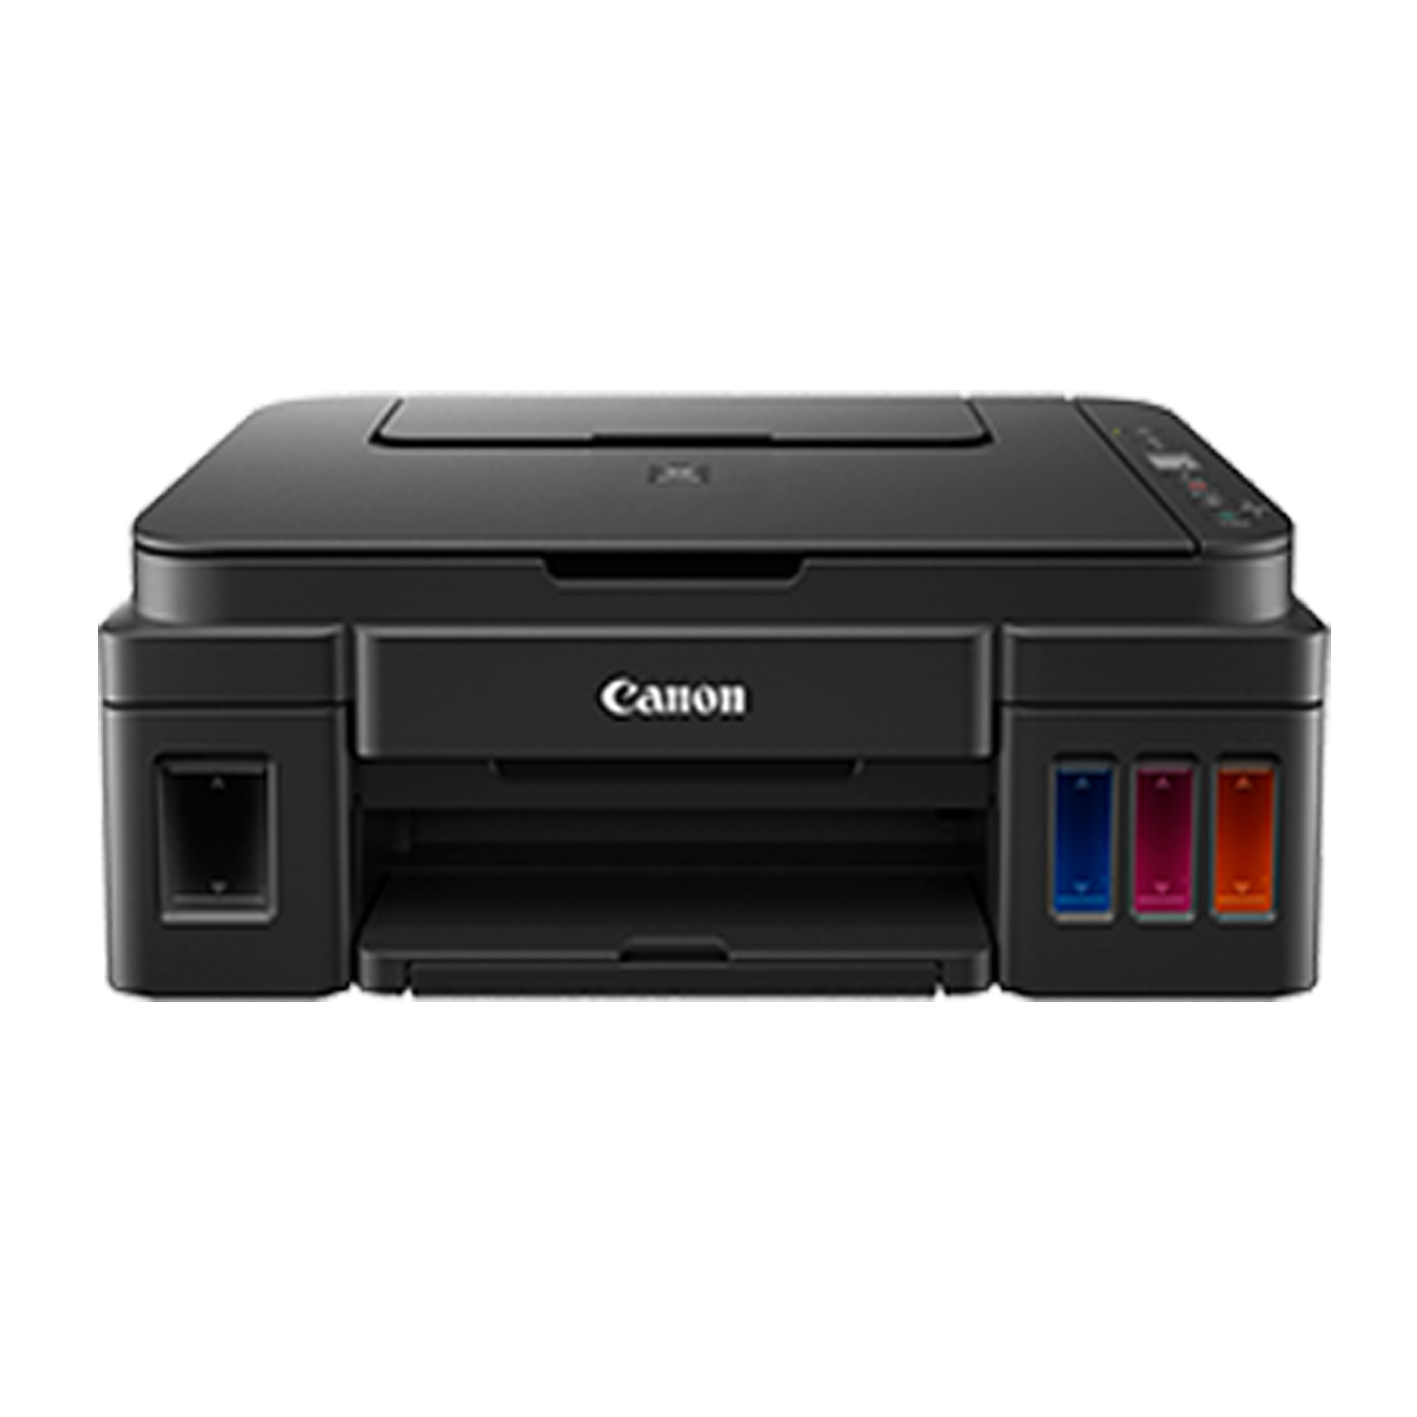 canon-pixma-g2010-ink-tank-color-printer